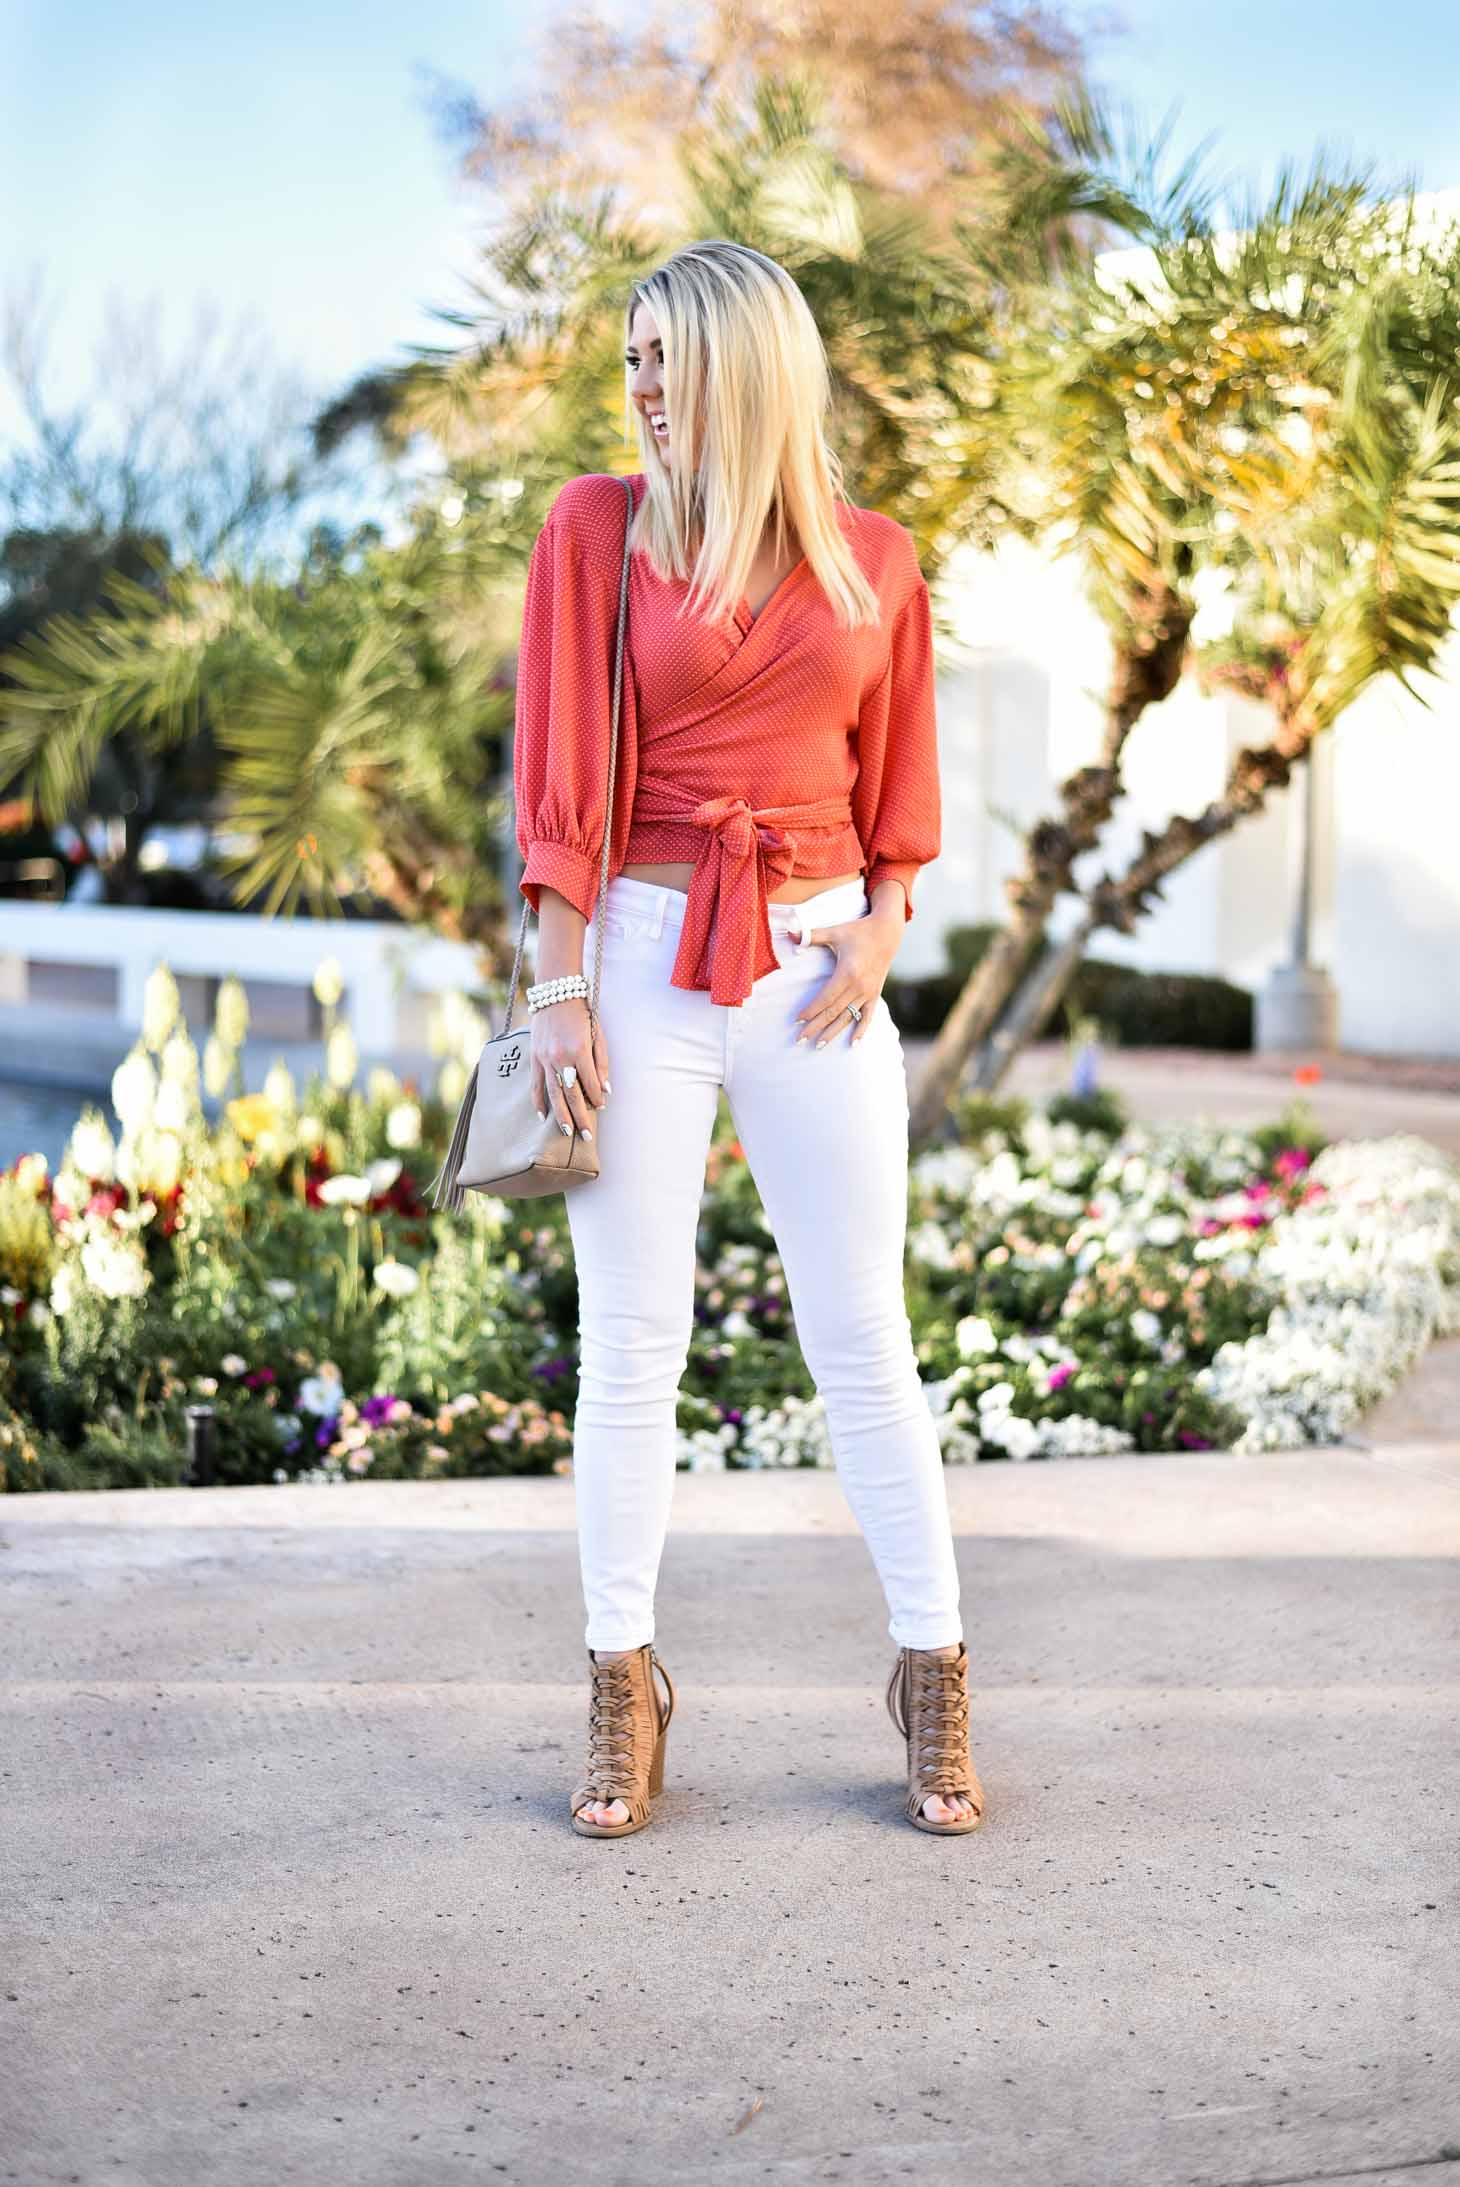 Erin Elizabeth of Wink and a Twirl Spring Polka Dot Wrap Top